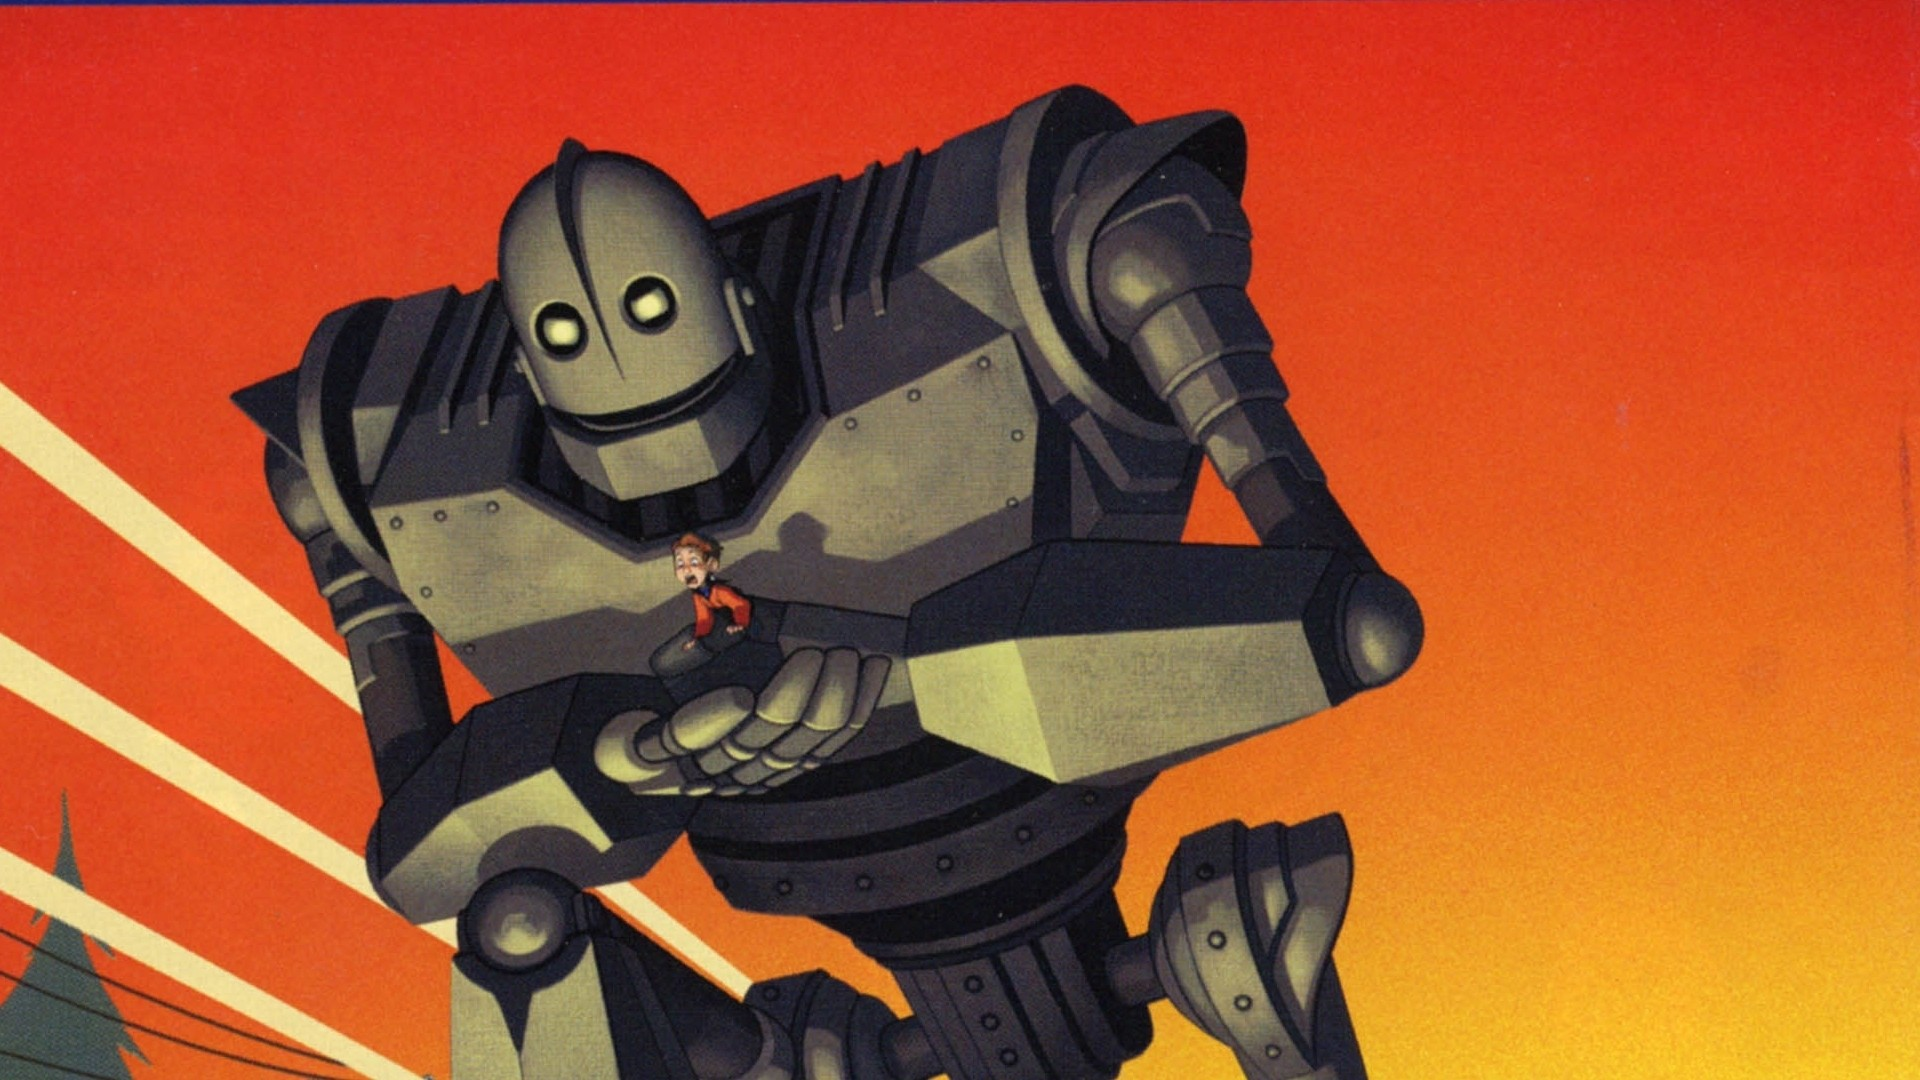 vin-diesel-hints-brad- birds-the-iron-giant-2-is-coming-0831-1